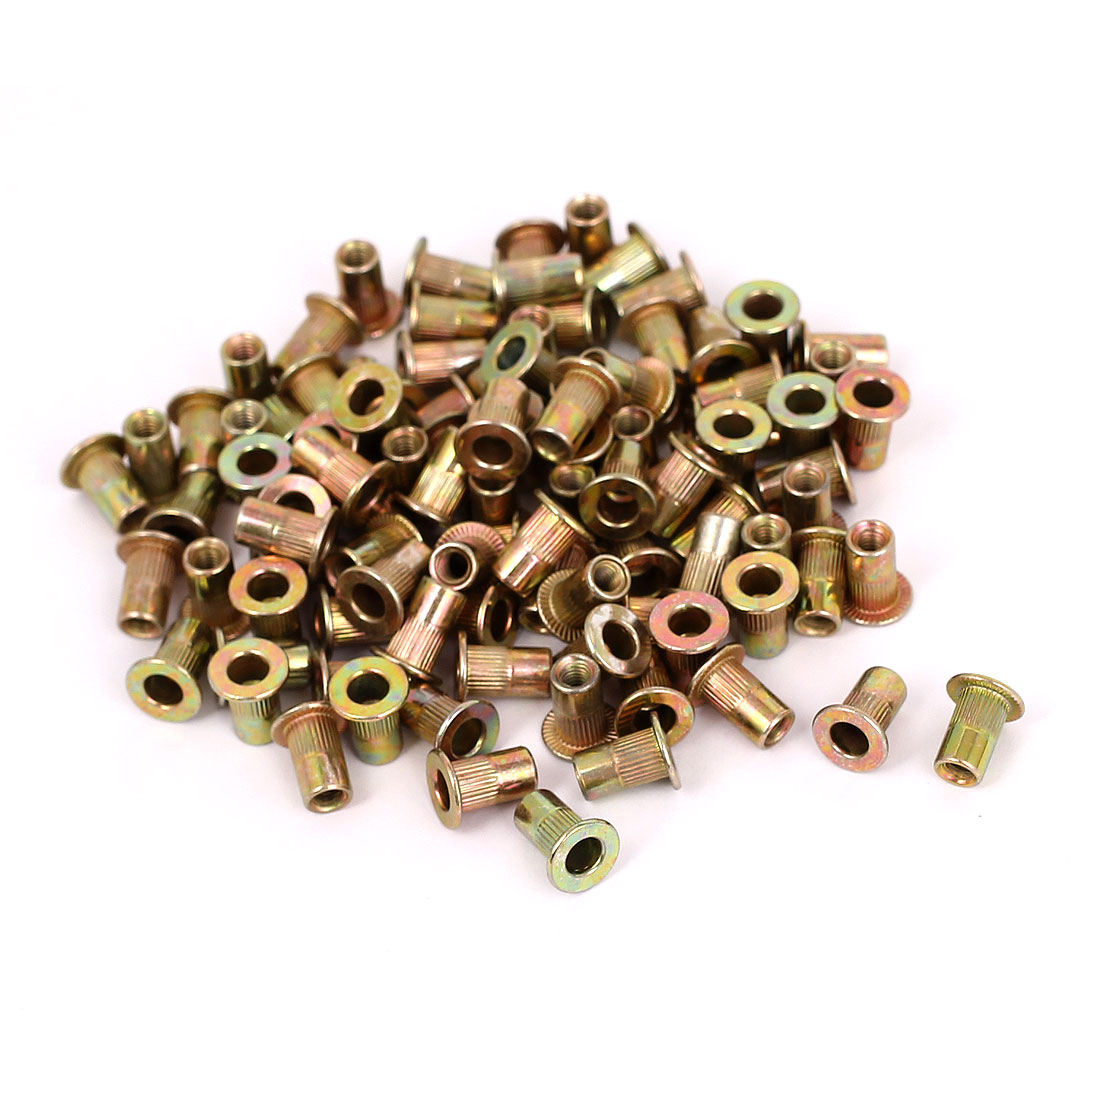 100pcs M3x9mm Carbon Steel Countersunk Head Blind Rivet Nuts Nutserts